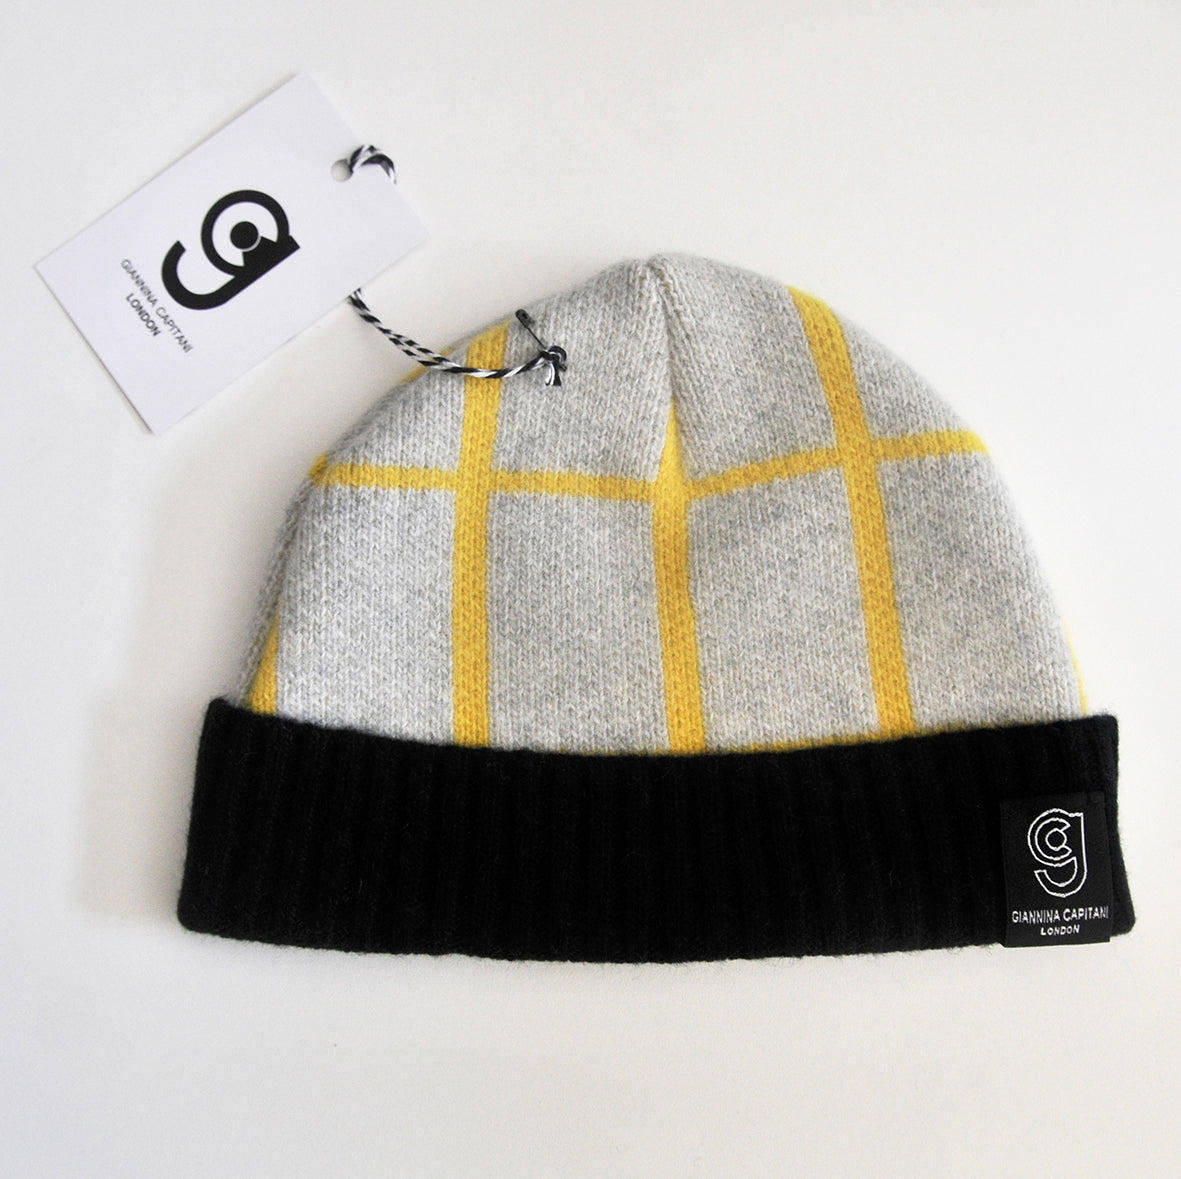 GRID BABY HAT IN GREY AND YELLOW